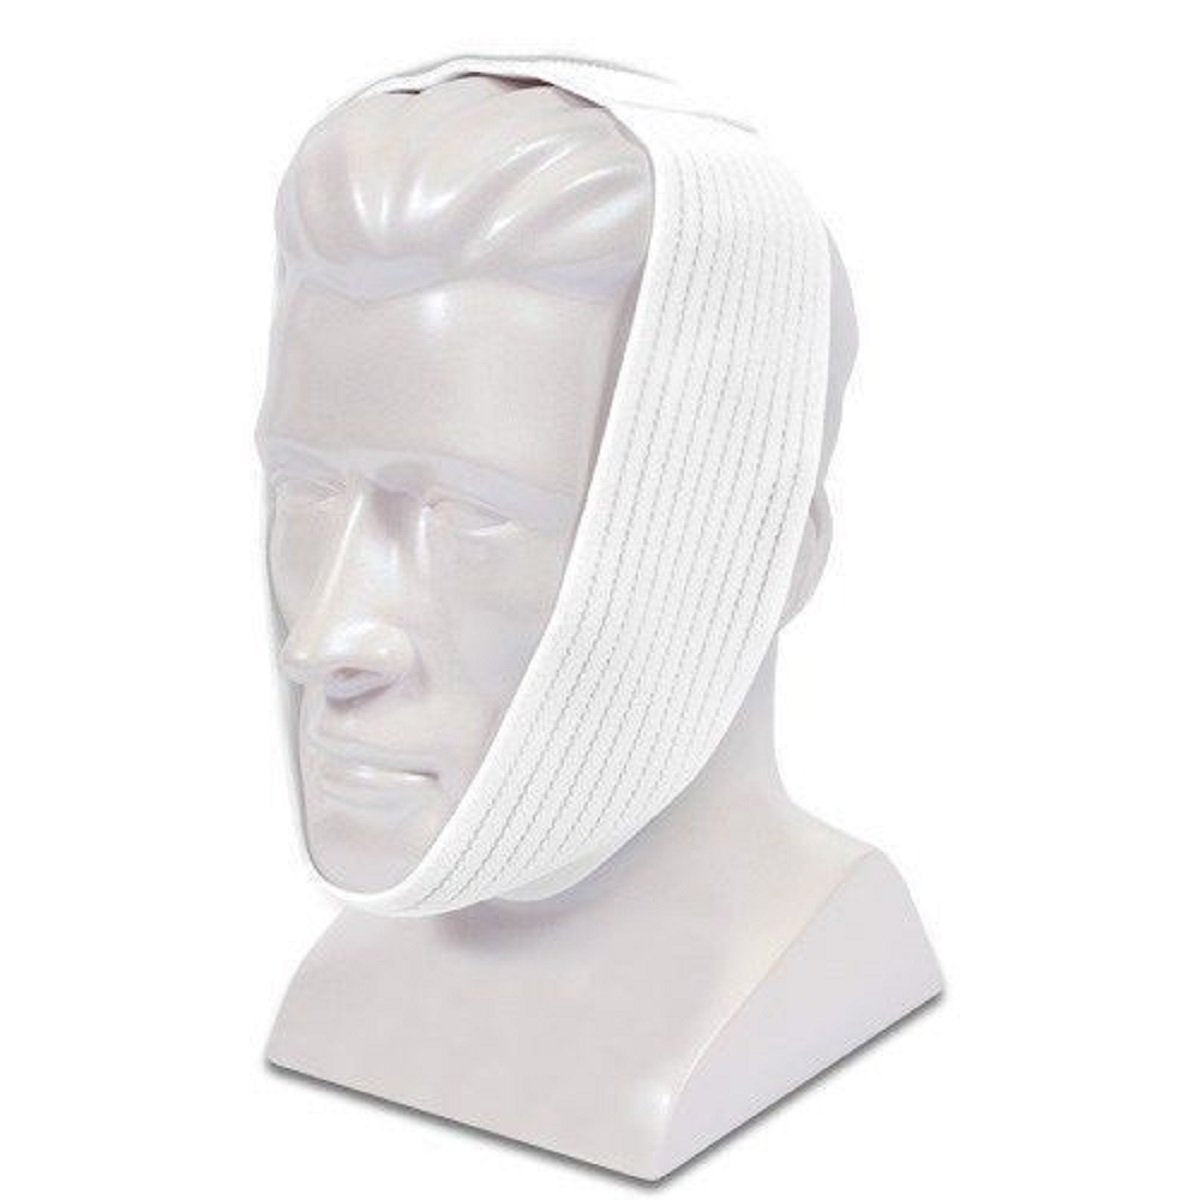 Deluxe Style Chinstrap for CPAP Therapy